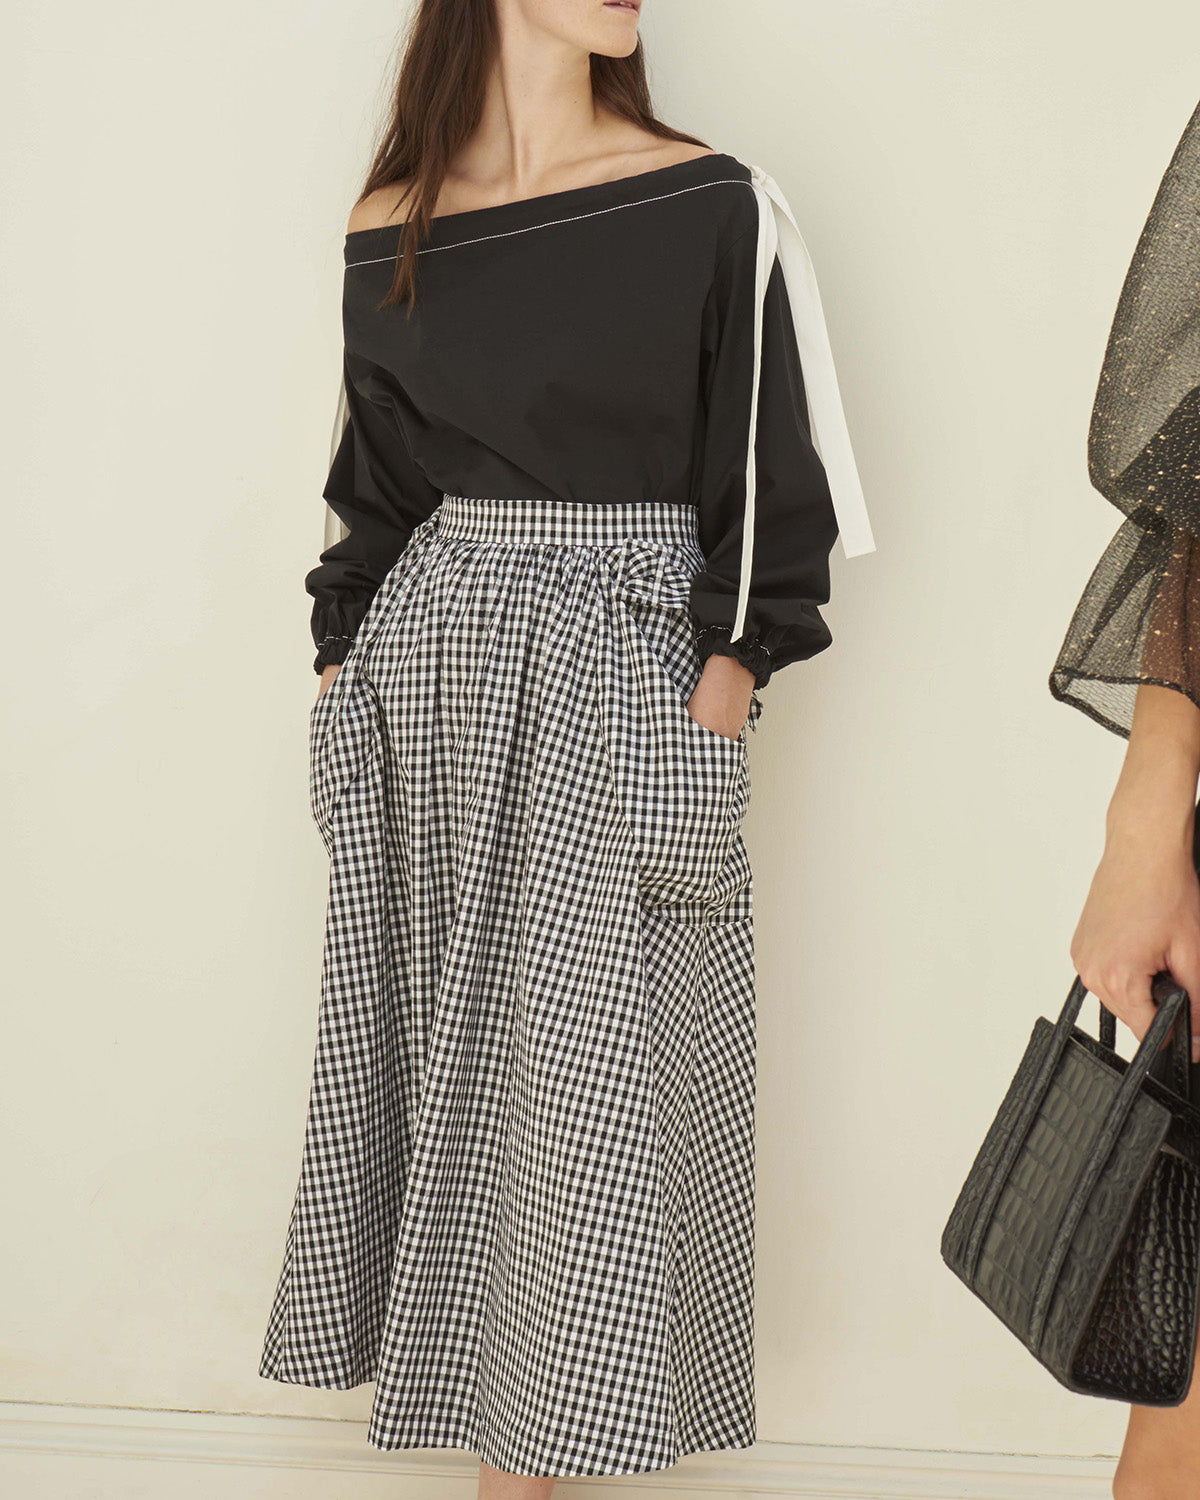 Daisy Skirt Cotton Black and White Gingham